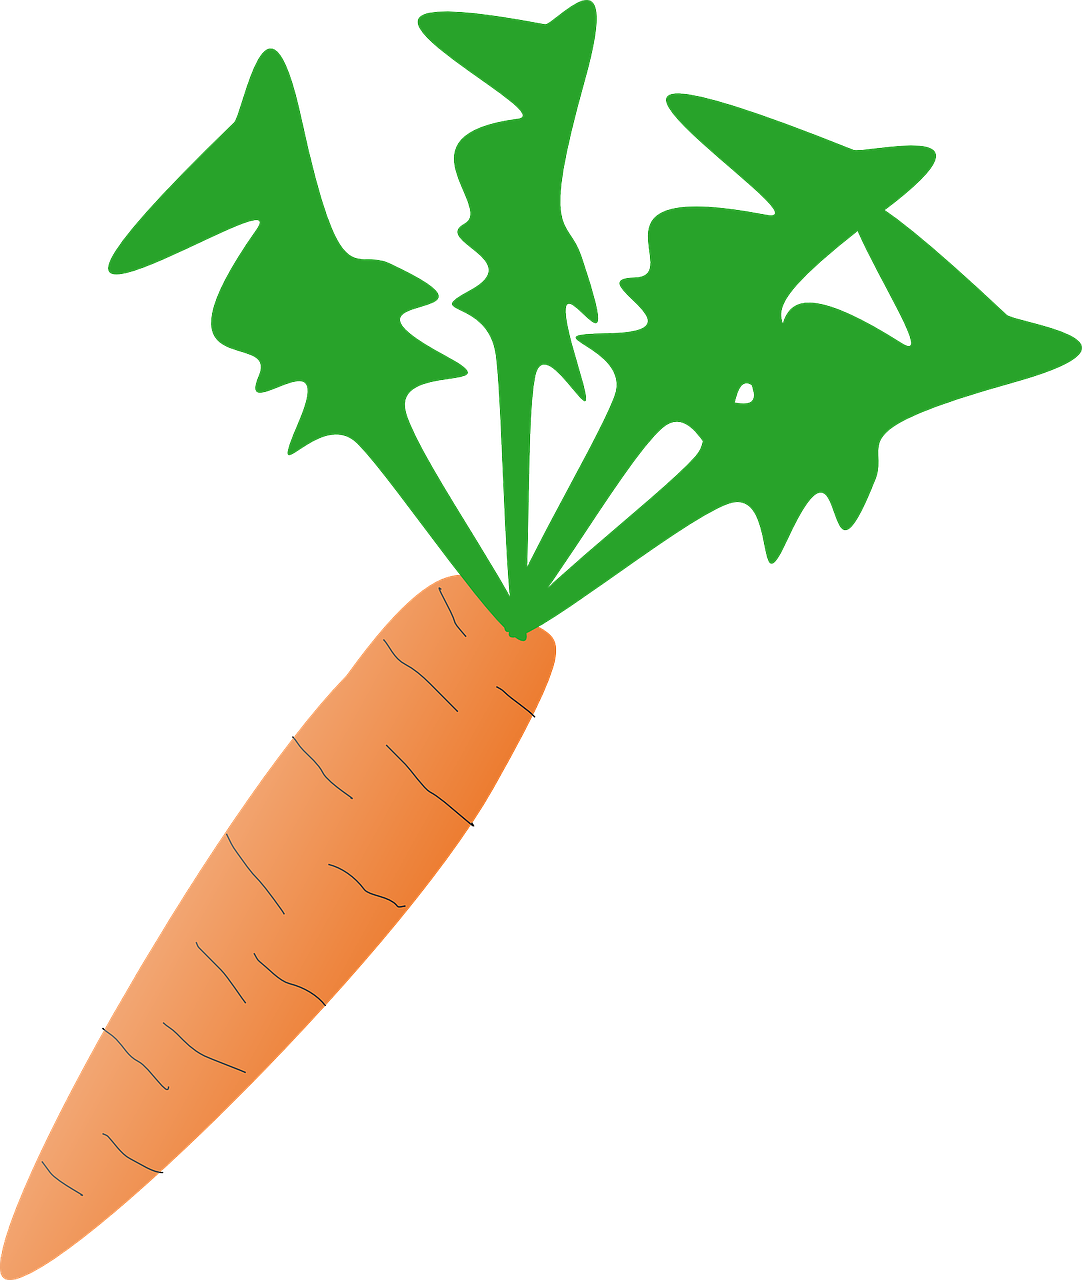 graphic black and white library Vegetable fresh healthy organic. Vector carrot veg